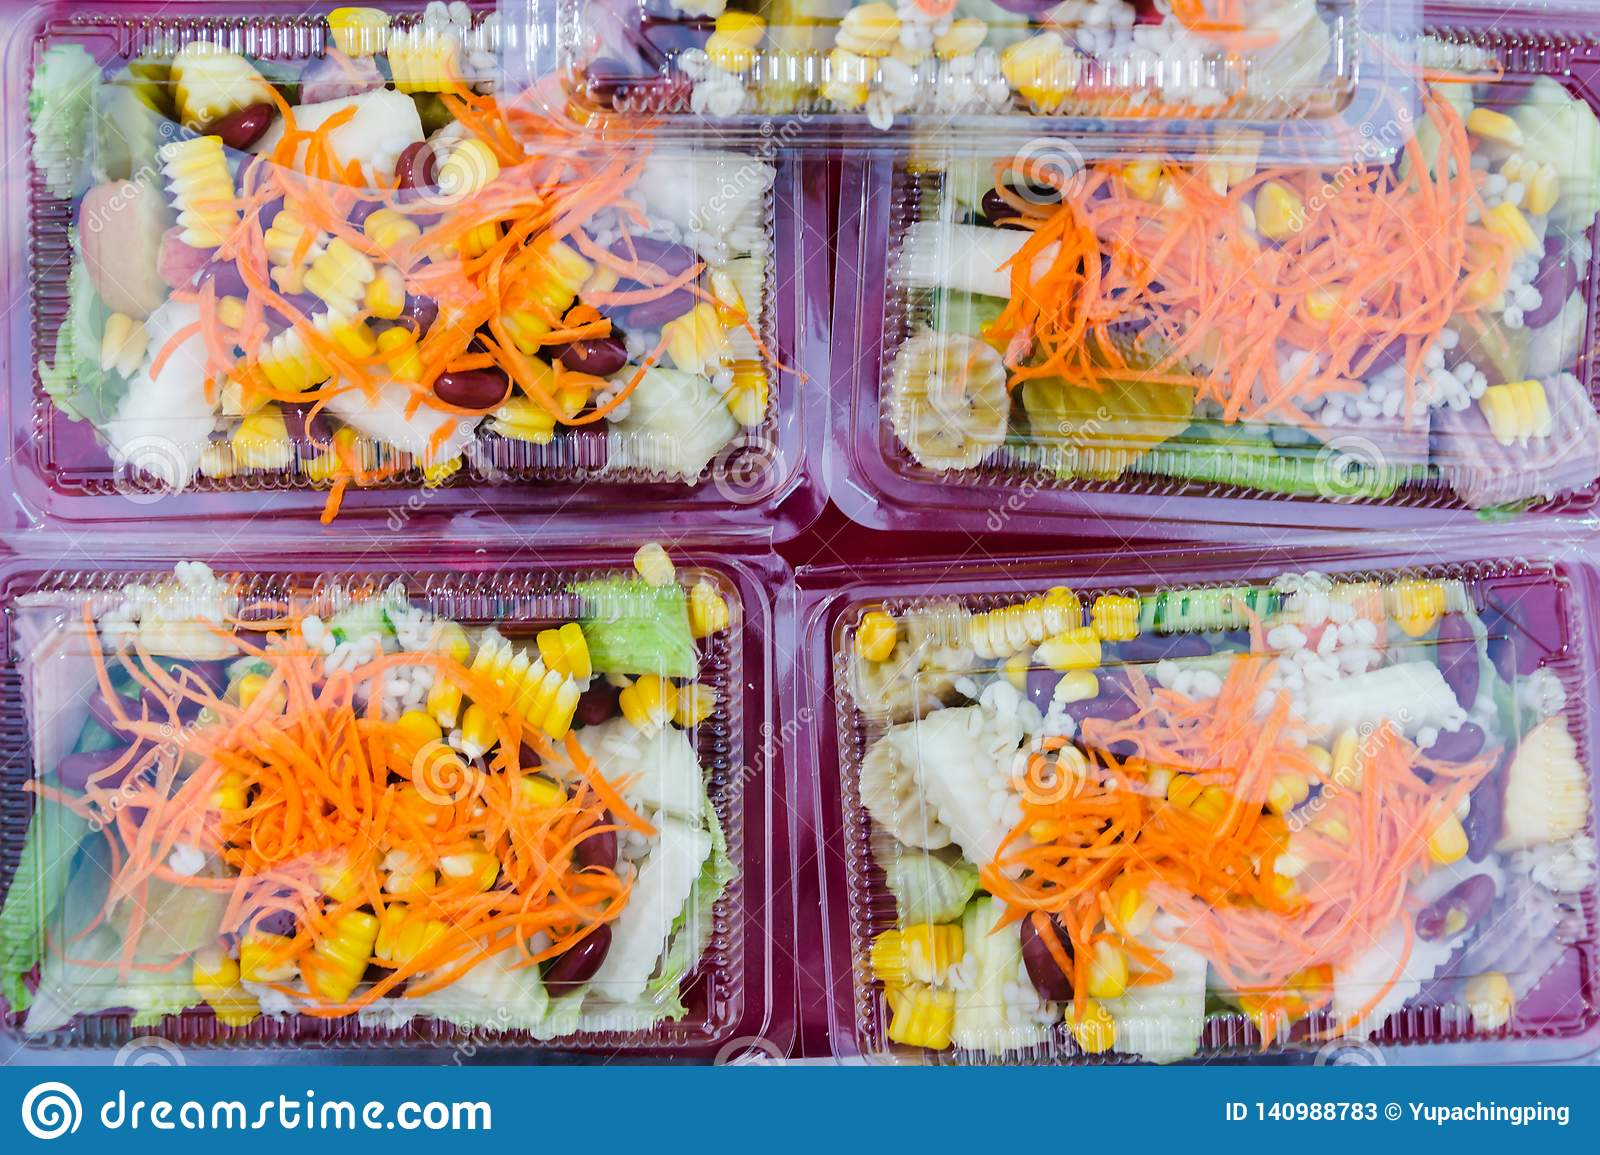 Mix fruit and vegetable salad in plastic package